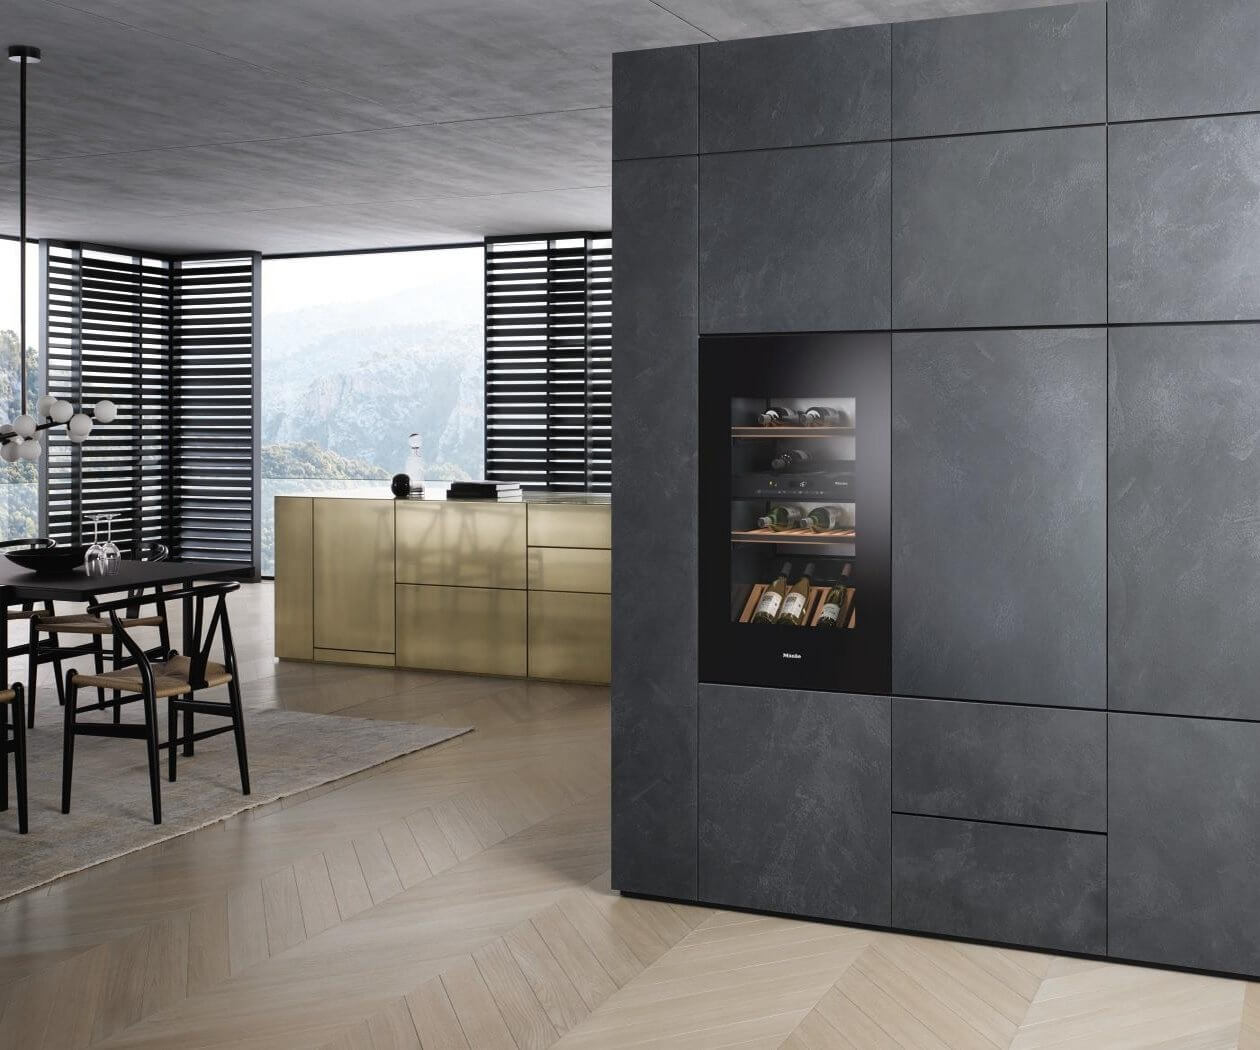 miele weink hlschrank produktvorteile die f r miele sprechen. Black Bedroom Furniture Sets. Home Design Ideas